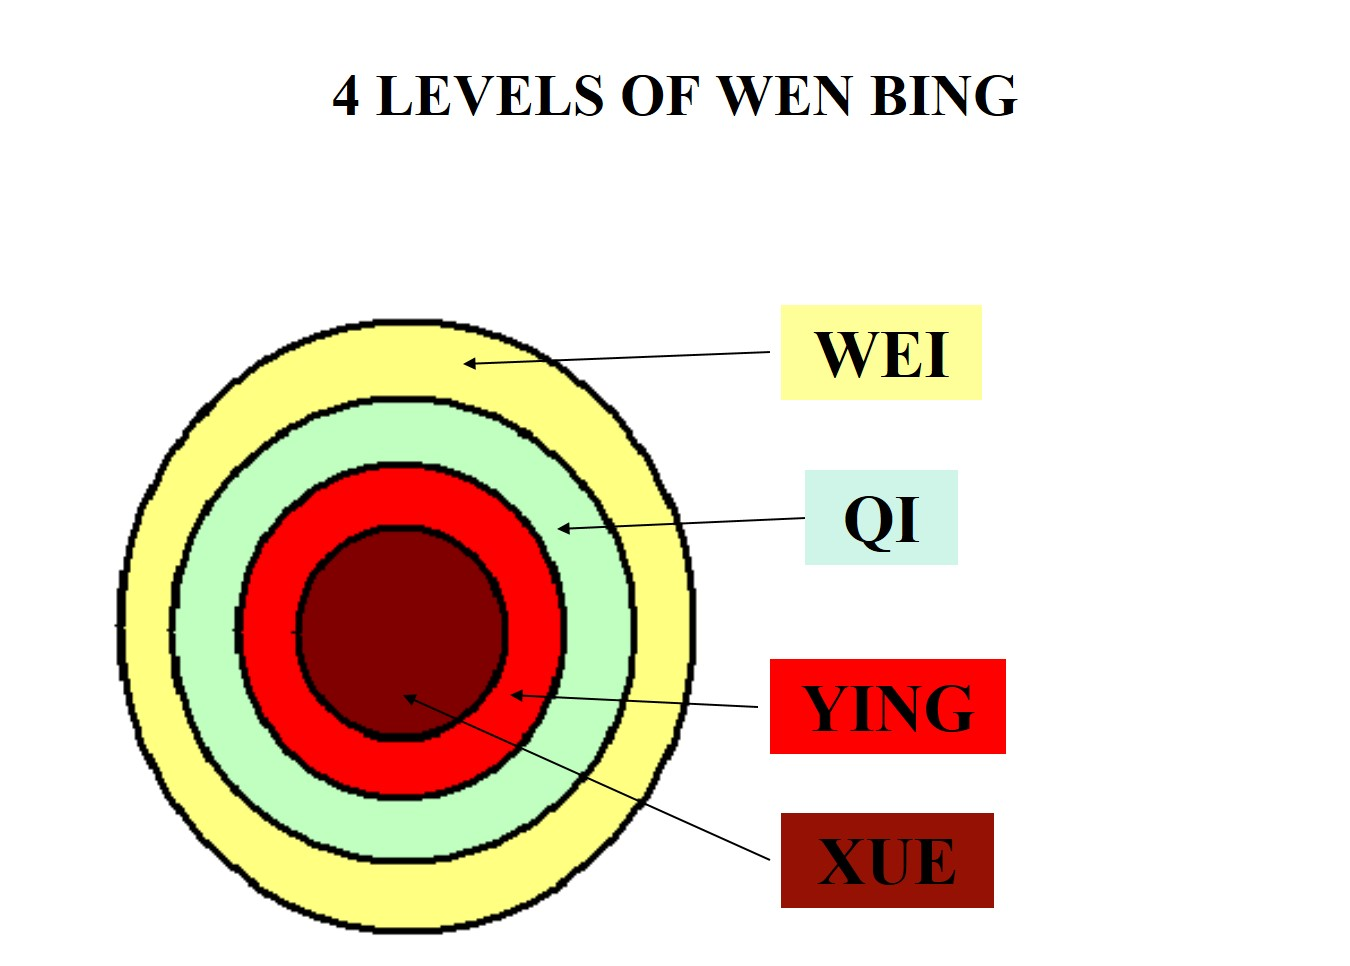 medium resolution of the wei level of the 4 levels broadly corresponds to the tai yang stage of the 6 stages the former deals with wind heat and the latter with wind cold